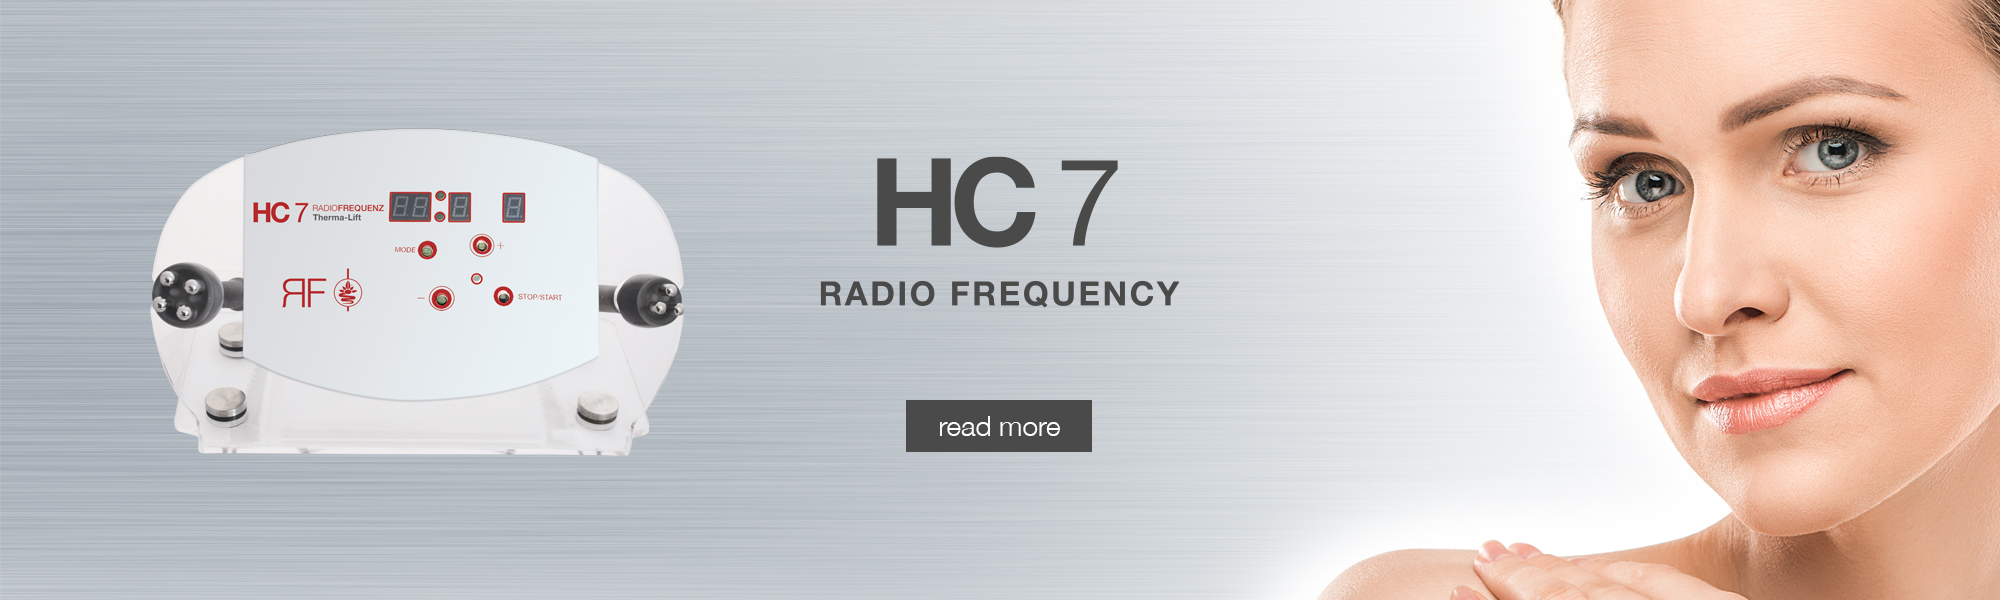 Radio Frequency 0418 mz GB